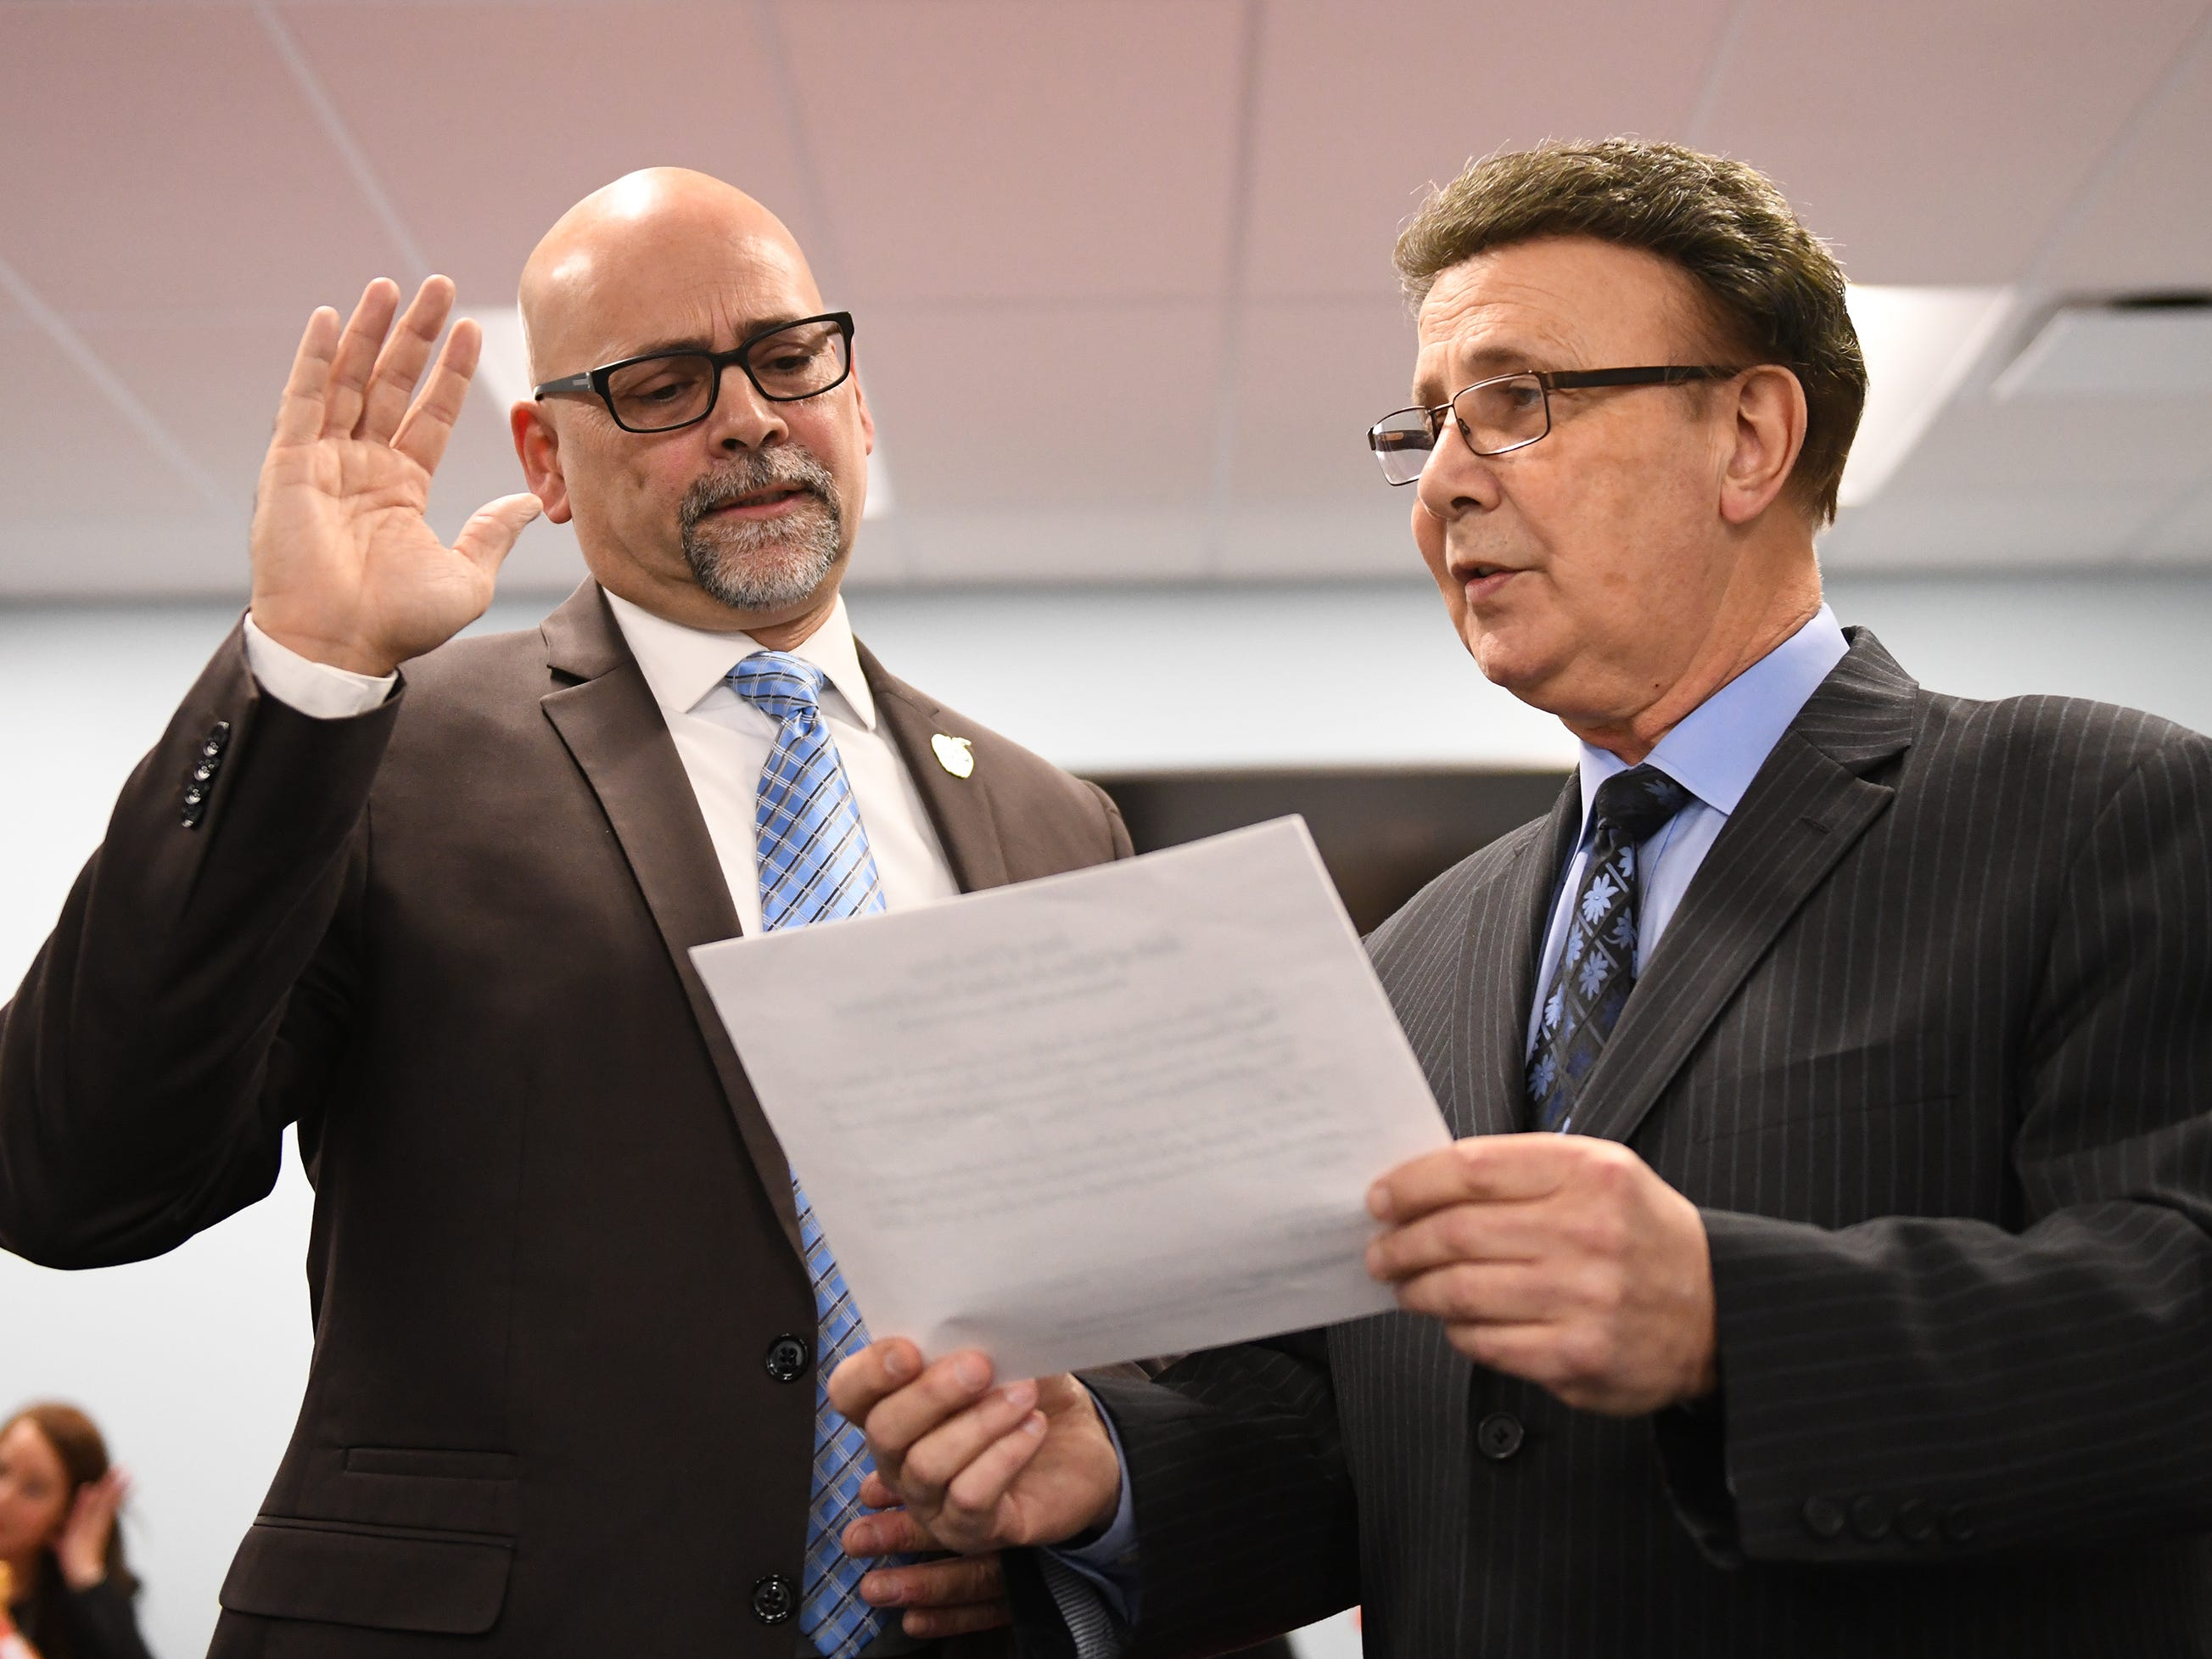 Scott E. English (left) takes the oath of office during a Vineland Board of Education reorganization meeting. Robert DeSanto takes part in the ceremony on Wednesday, January 2, 2019.